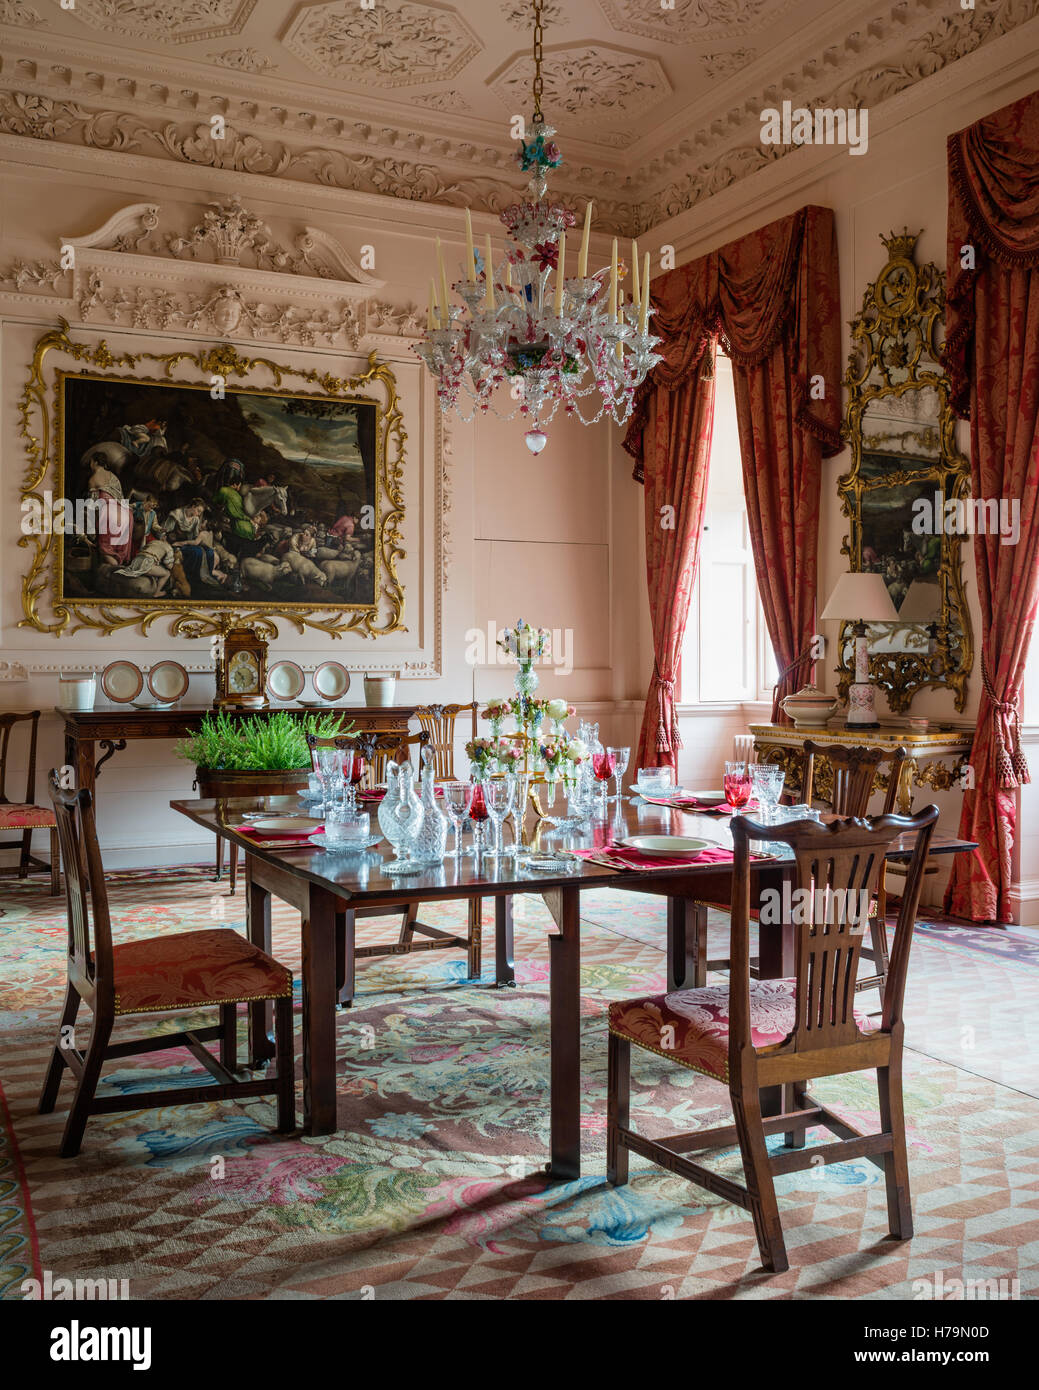 Murano Glass Chandelier With Artwork In Dining Room Of 18th Century  Dumfries House, Ayrshire, Scotland